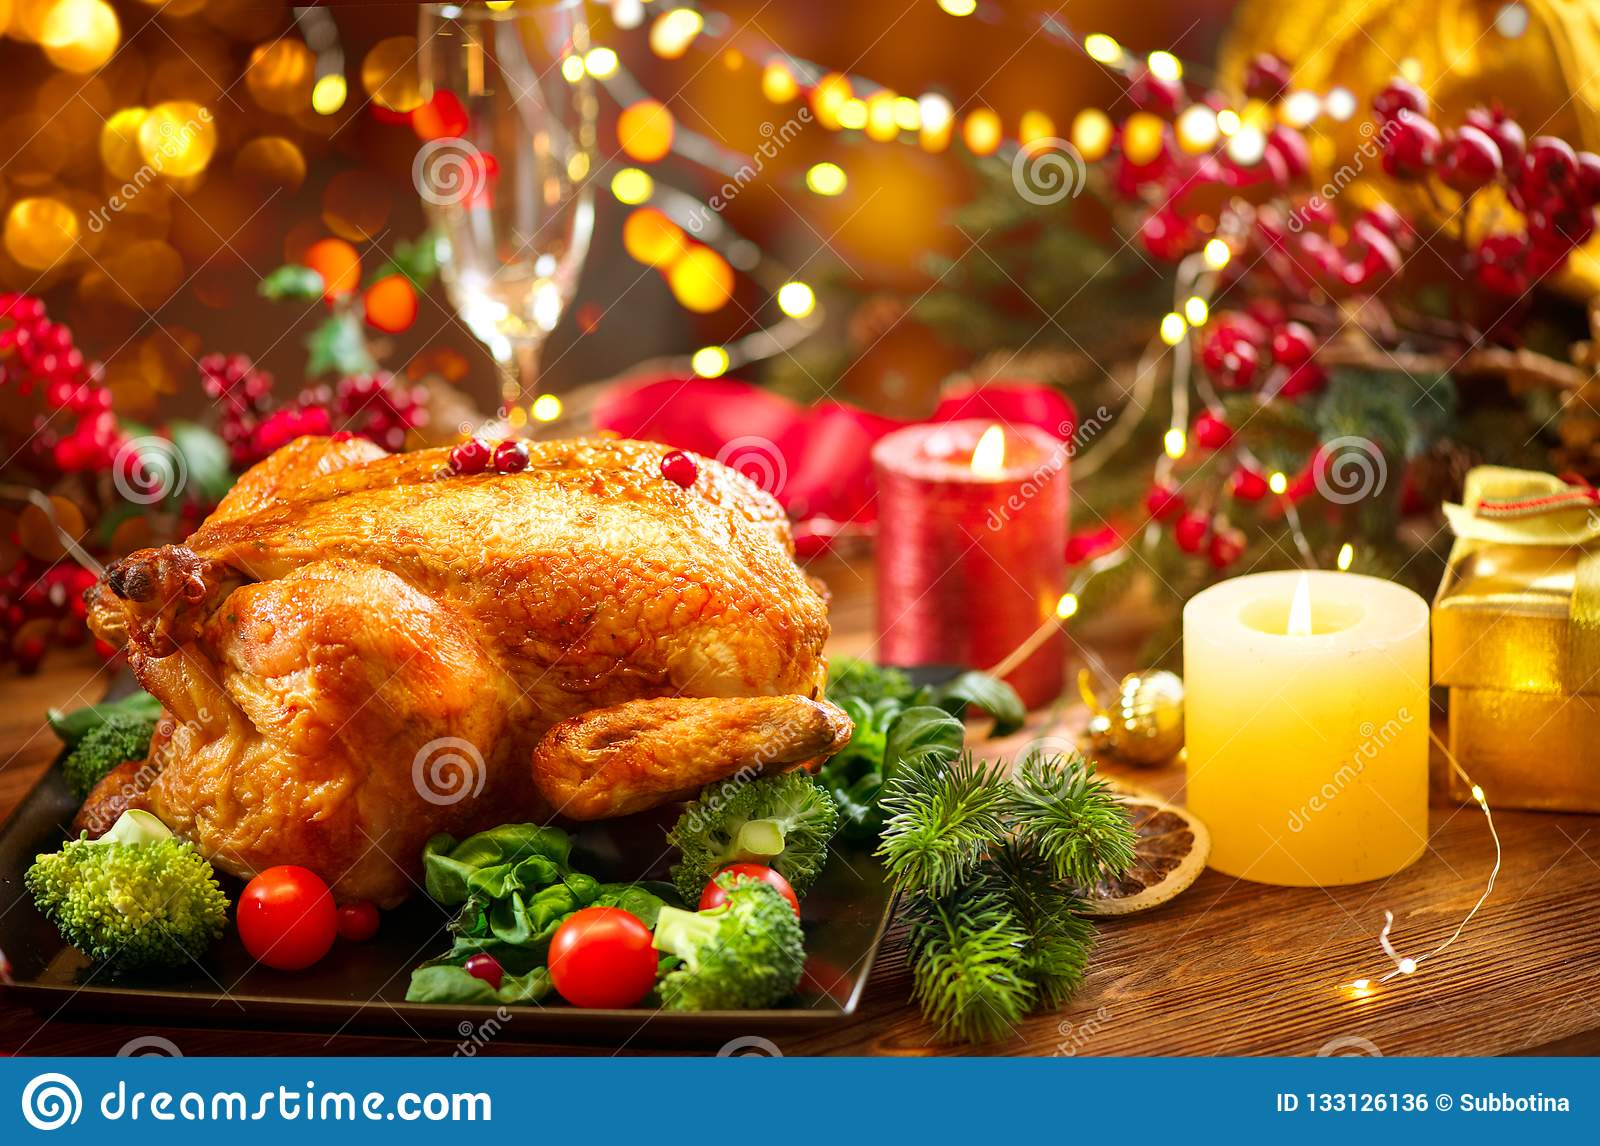 Christmas family dinner. Roasted chicken on holiday table, decorated with gift boxes, burning candles and garlands. Roasted turkey